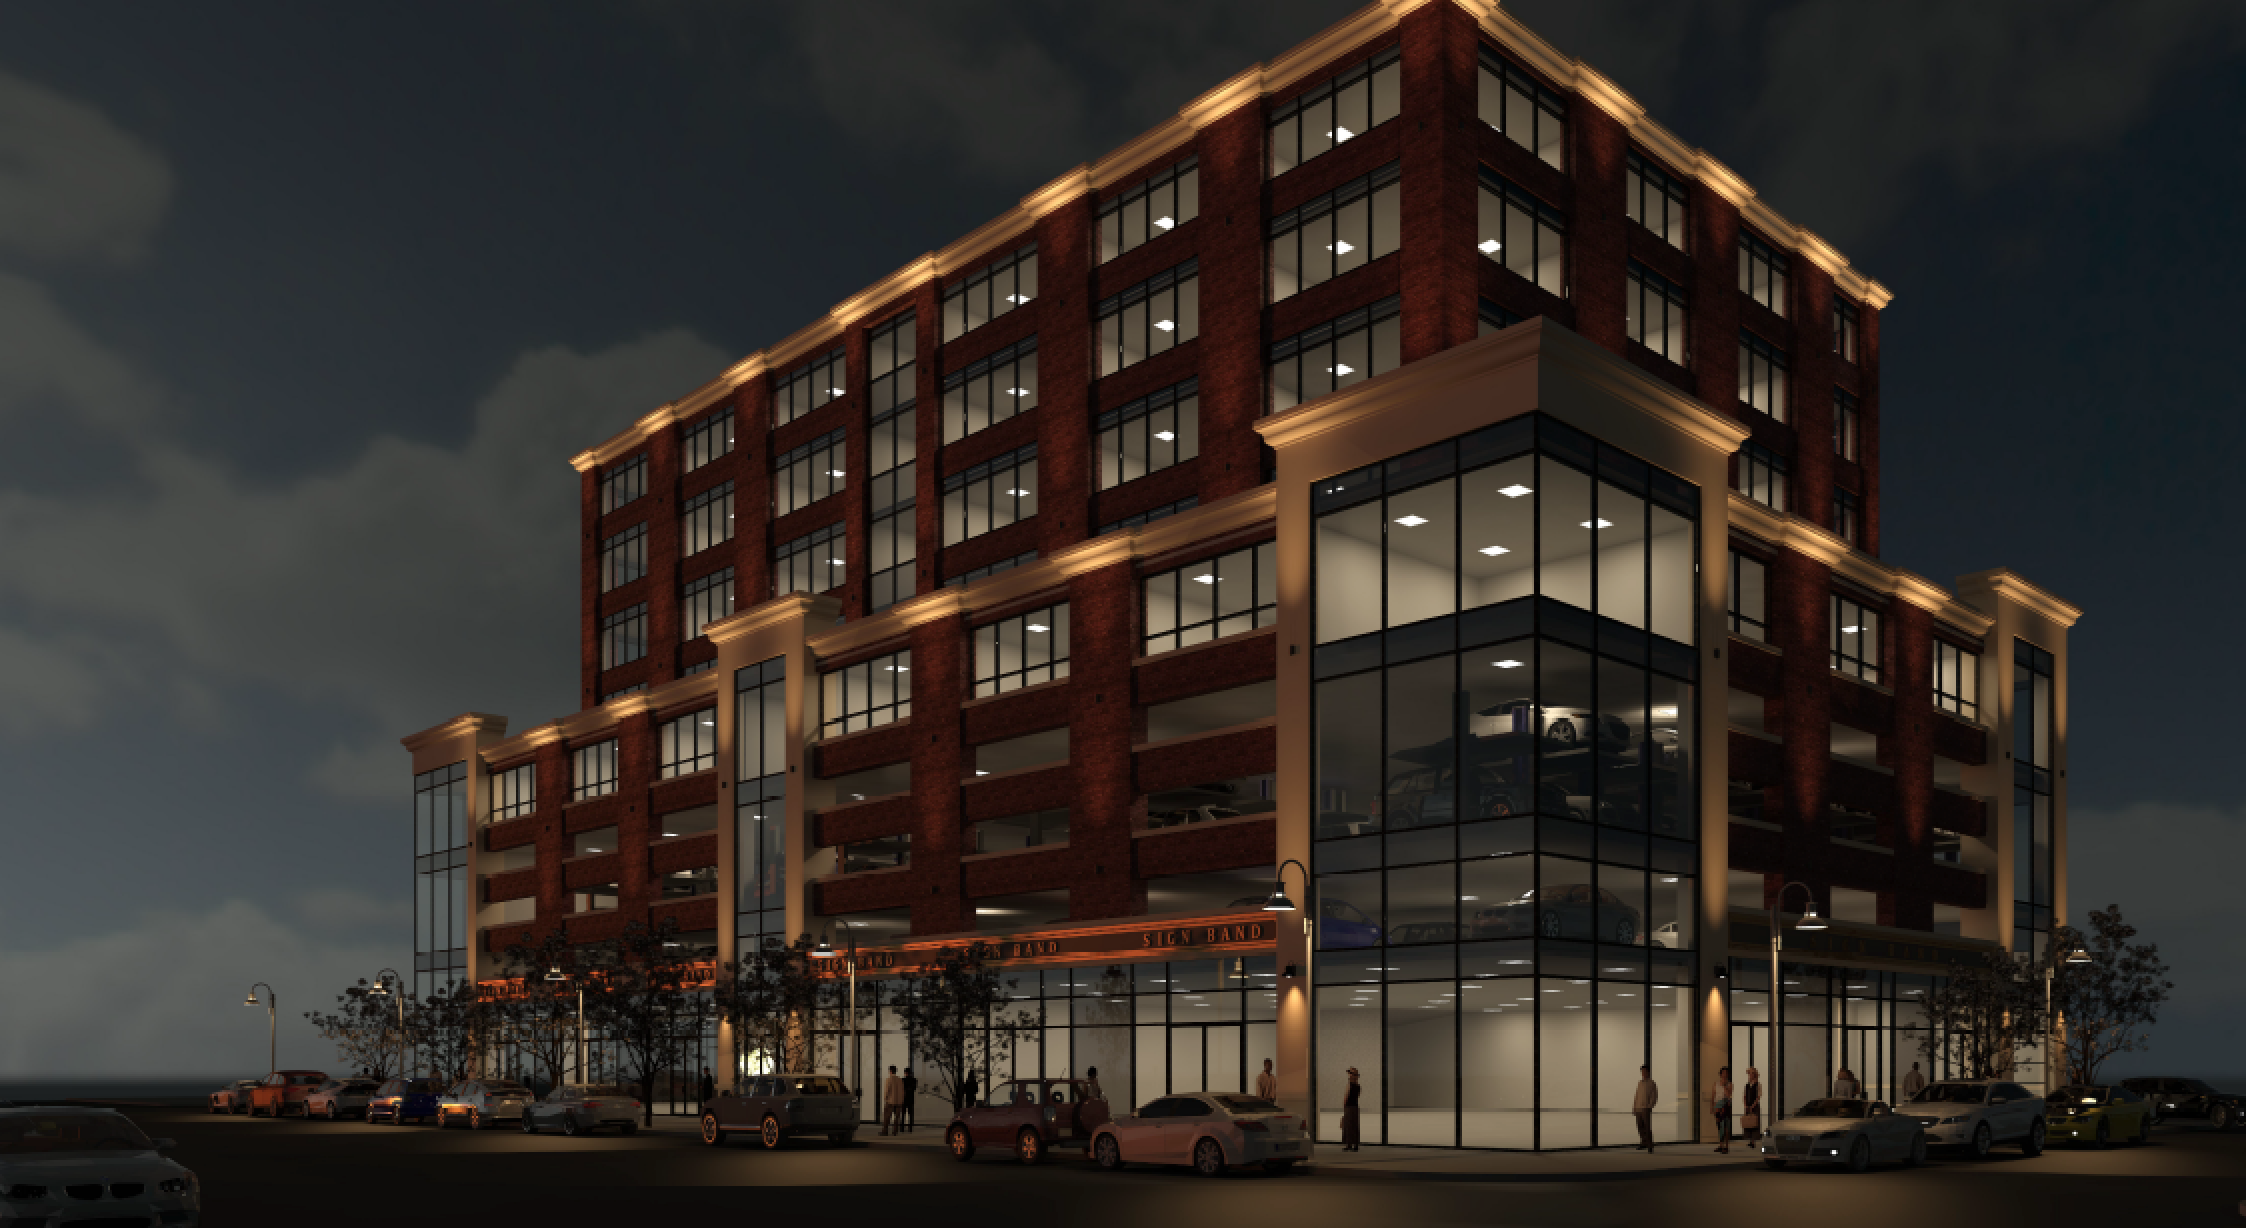 74-04 Northern Boulevard, rendering via DCP